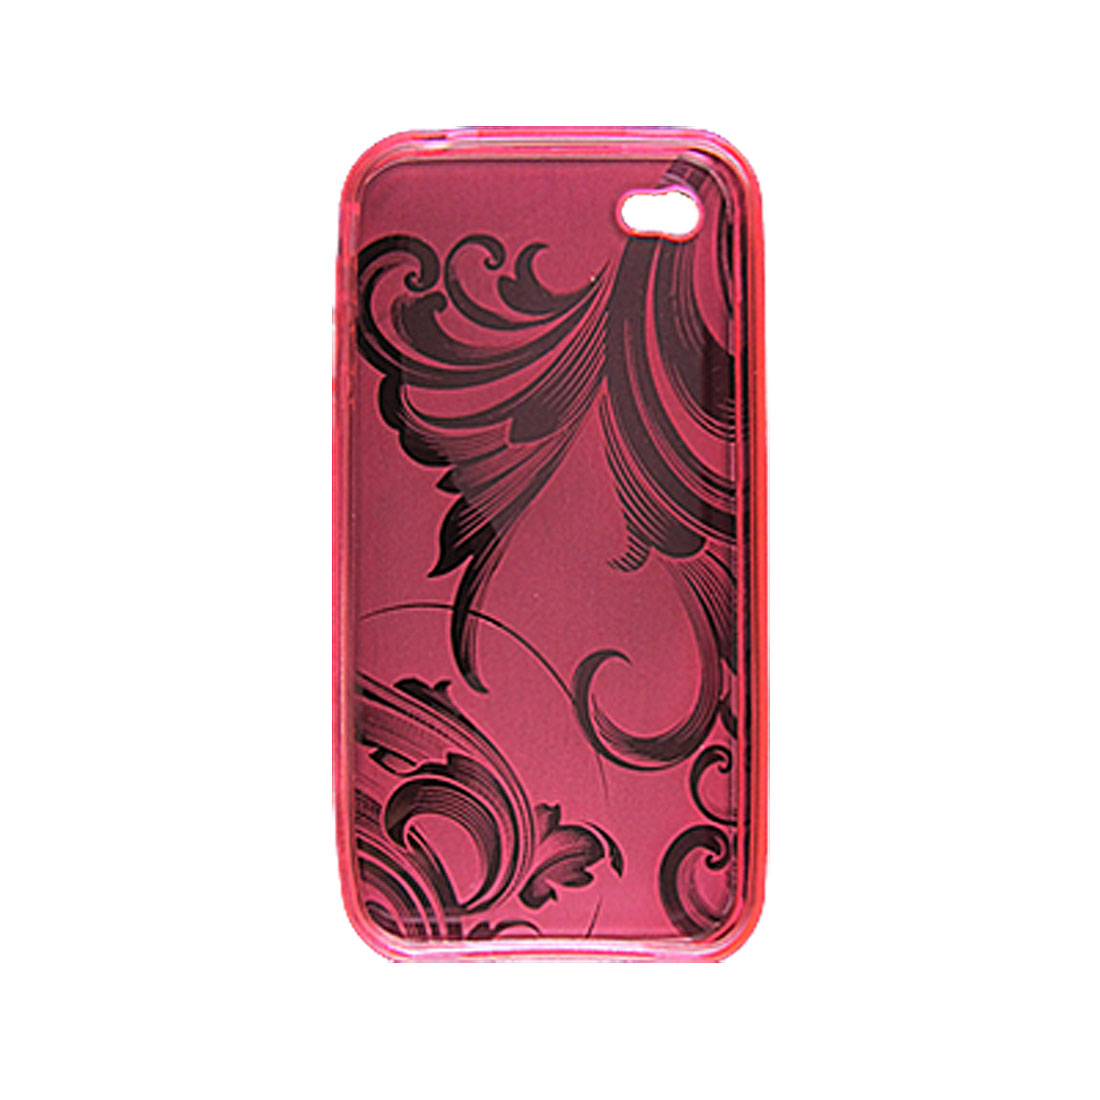 Clear Wave Pattern Soft Plastic Pink Case for iPhone 4 4G